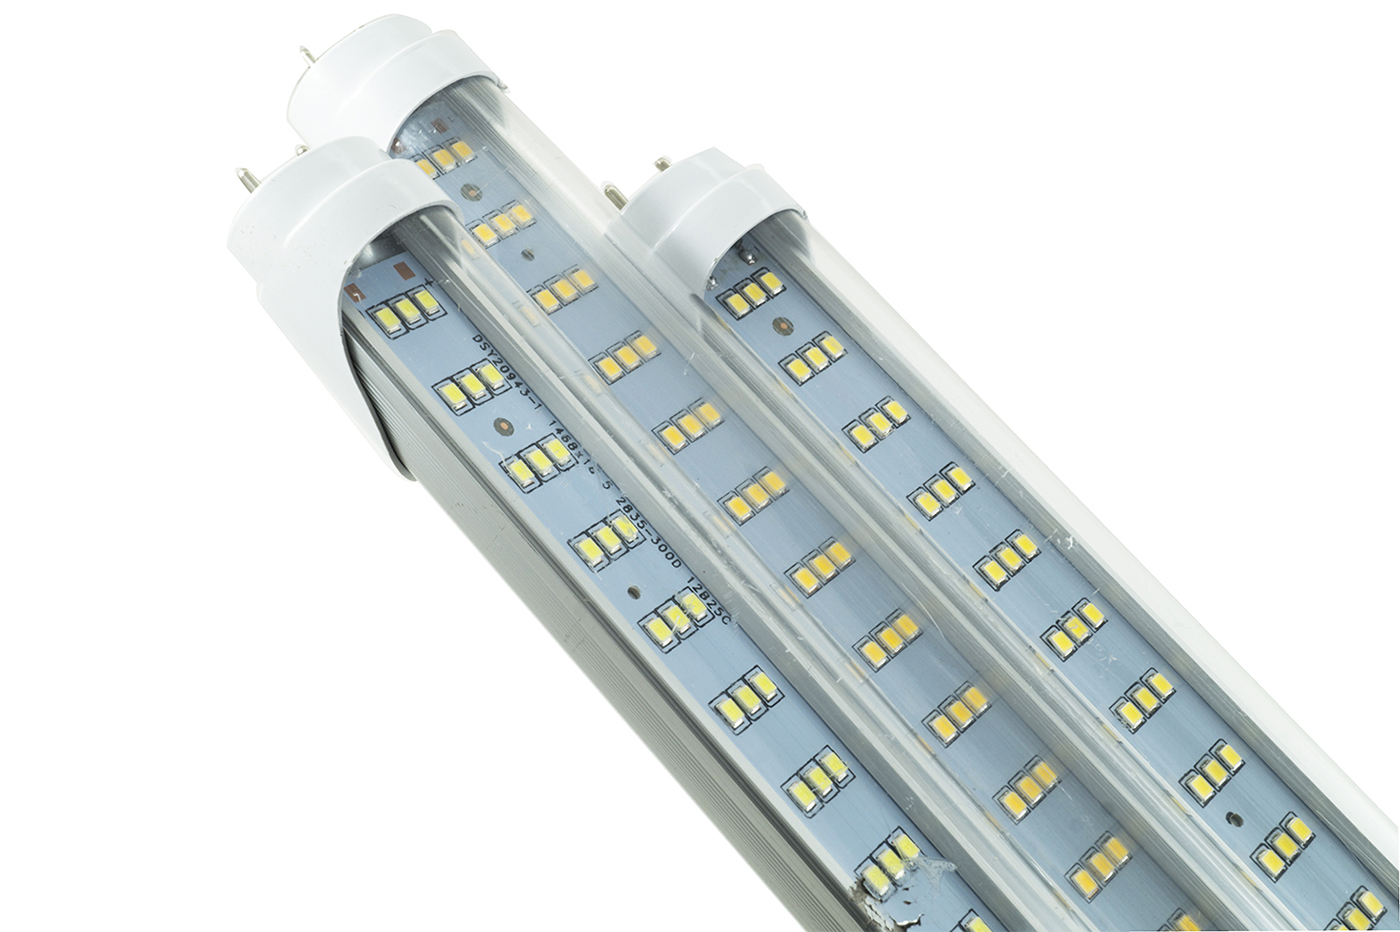 Plafoniera Tubo Led : Bes tubi led beselettronica neon w cm luce